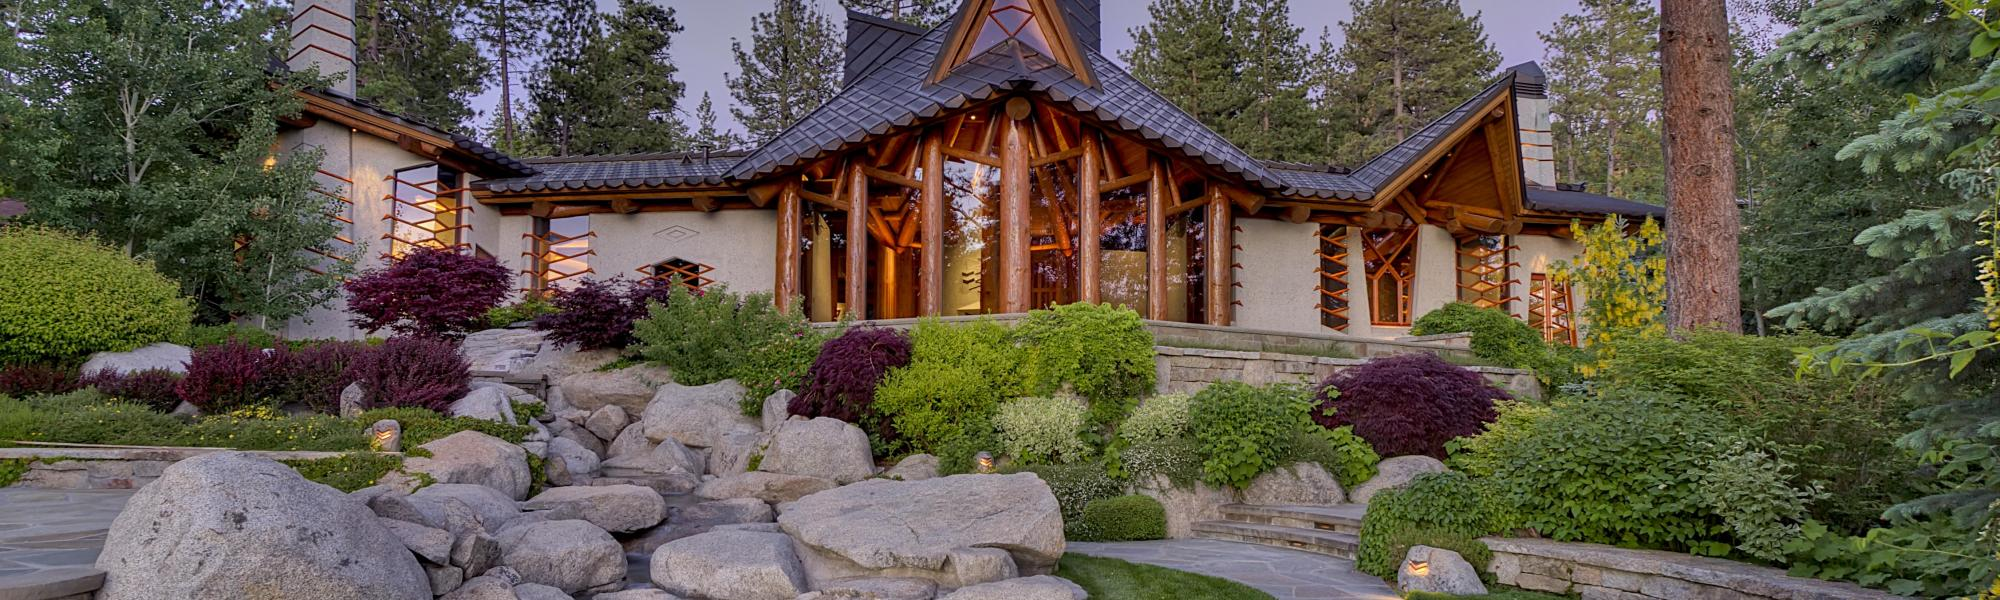 vacation homes lakefront sale south lake for rental tahoe cabin shore boat cabins nevada in